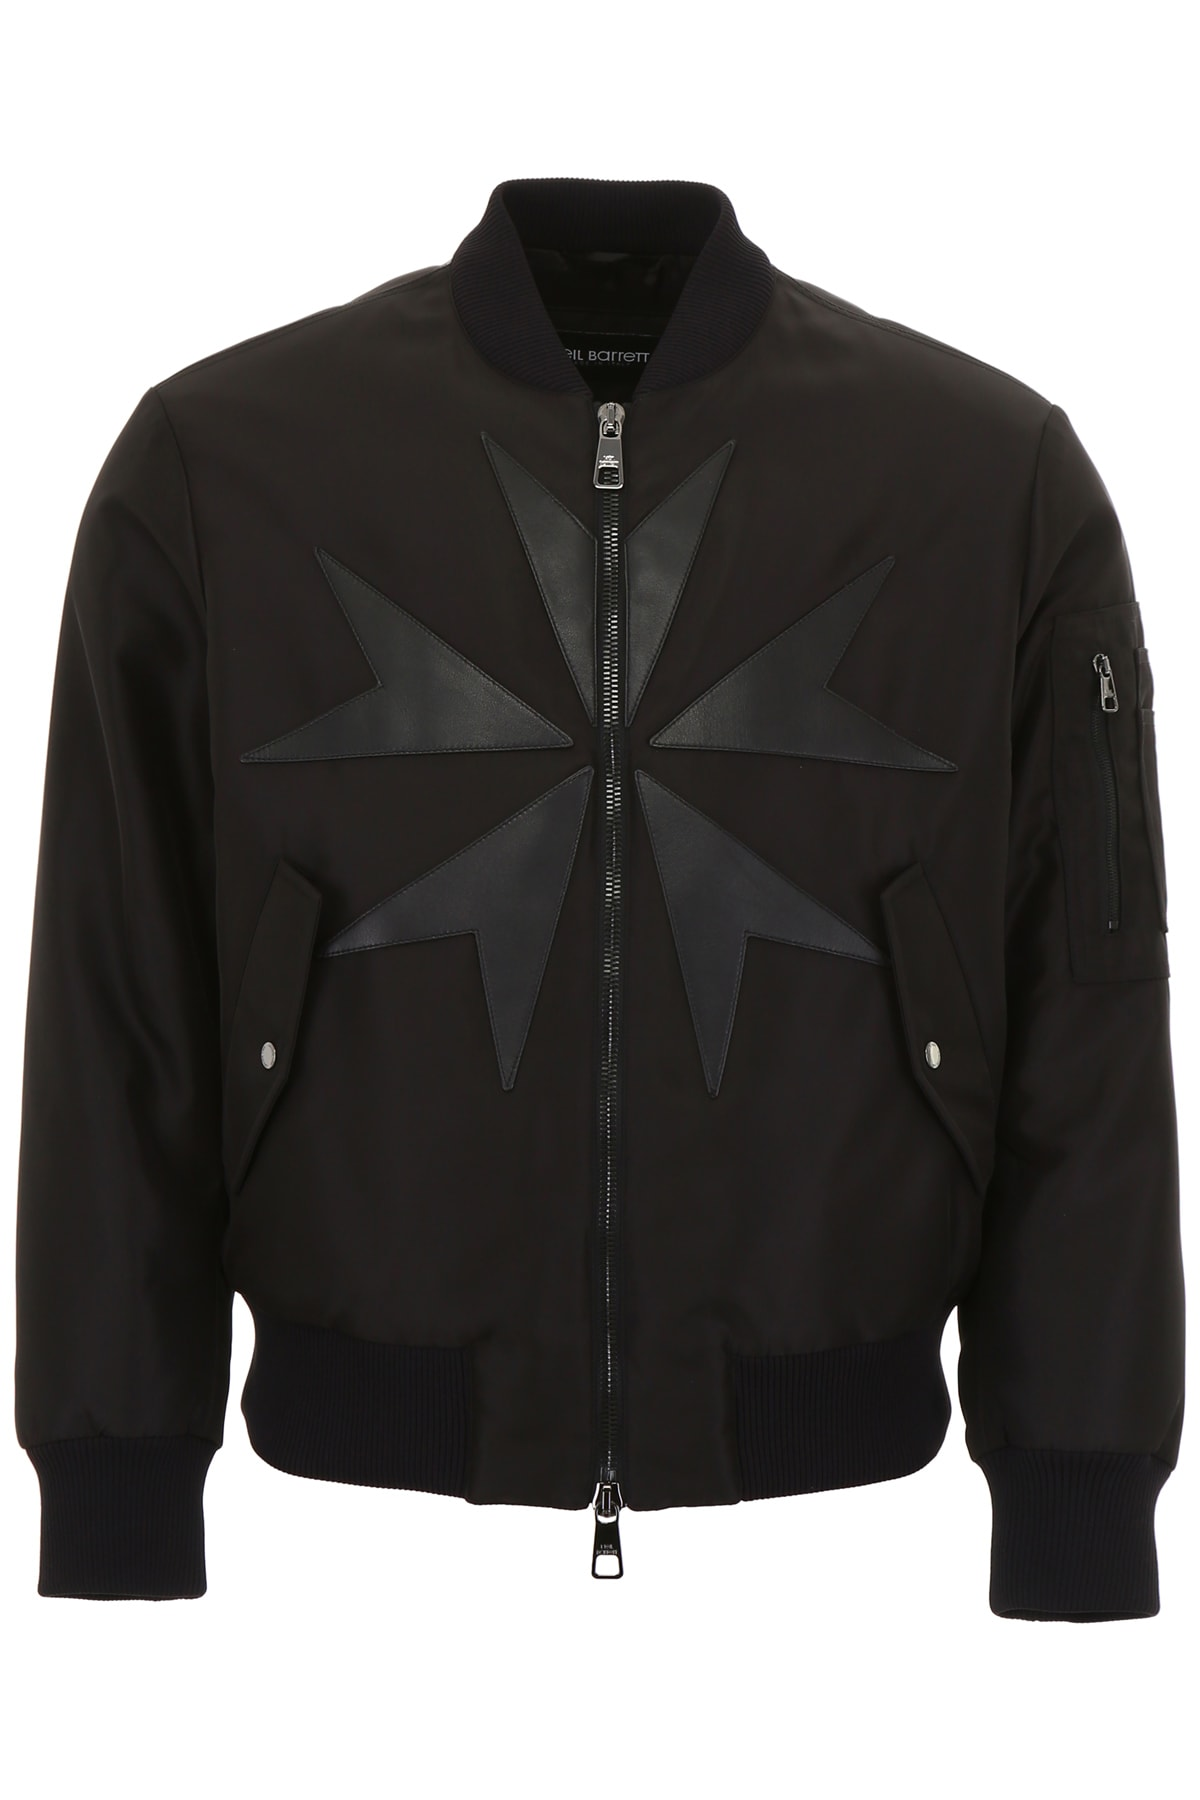 98c2d759b Neil Barrett Bomber Jacket With Patches